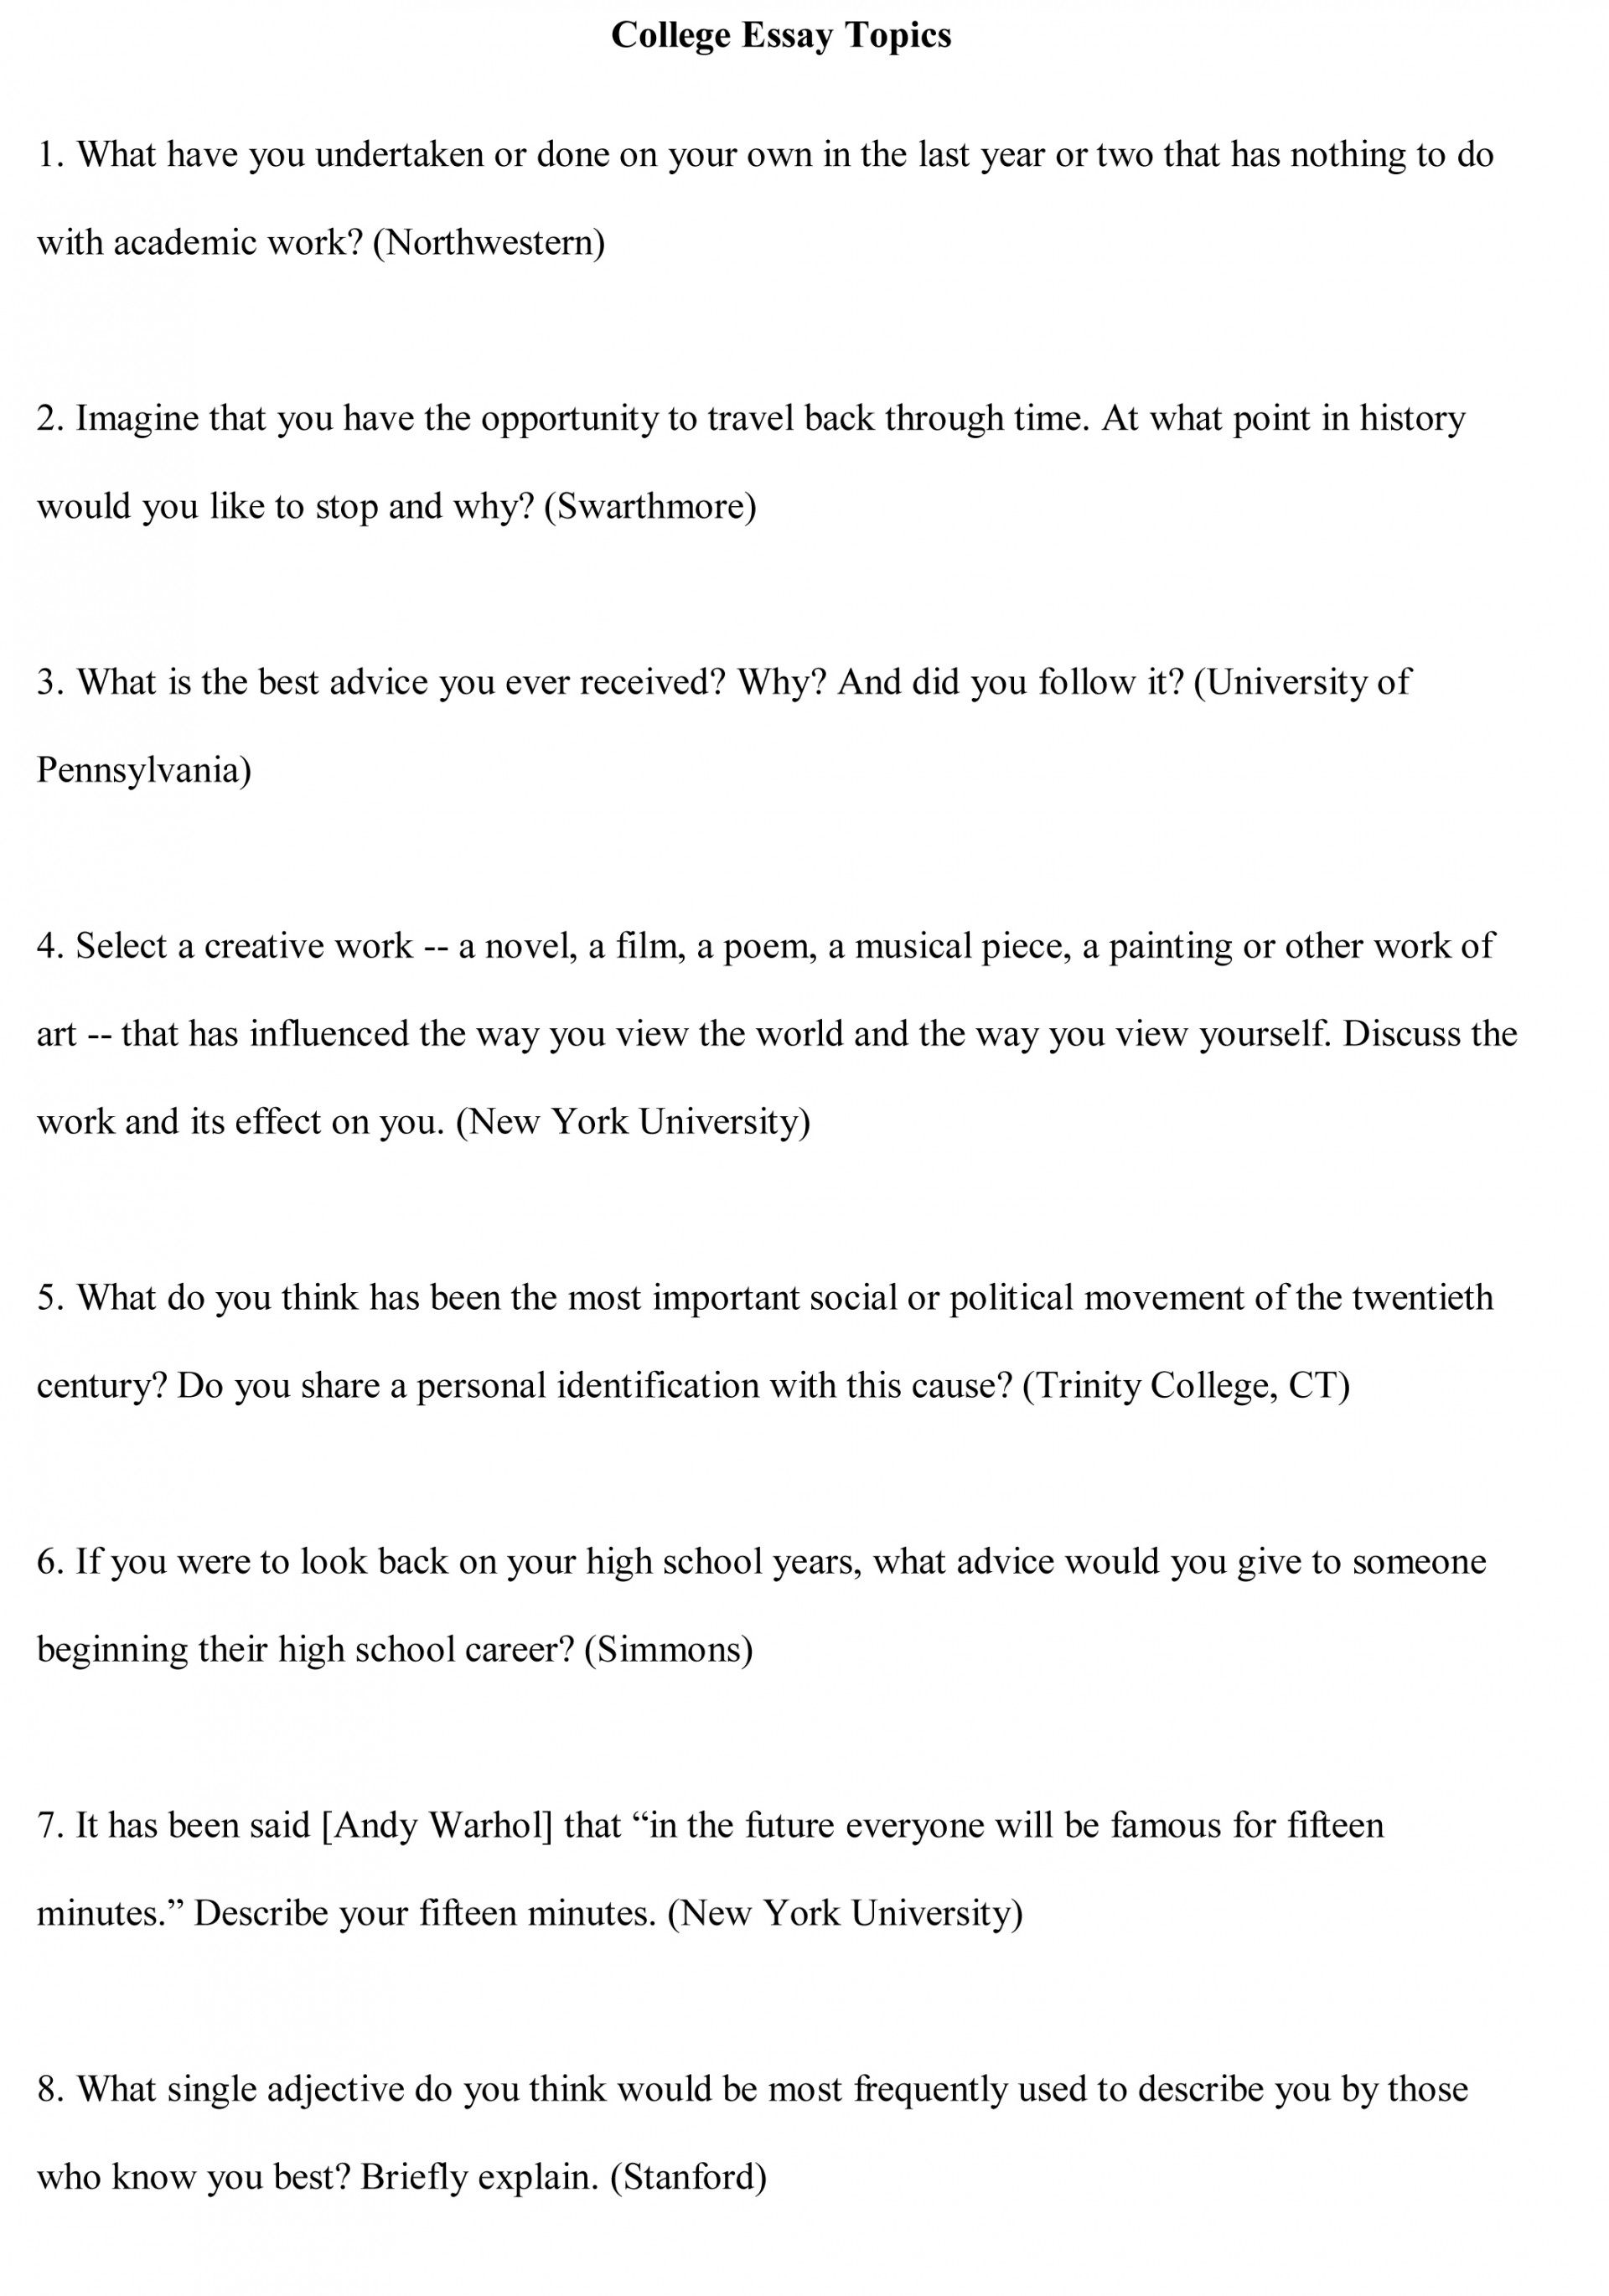 003 College Essay Topics Free Sample1 Prompts Impressive Uc Texas And Examples 1920